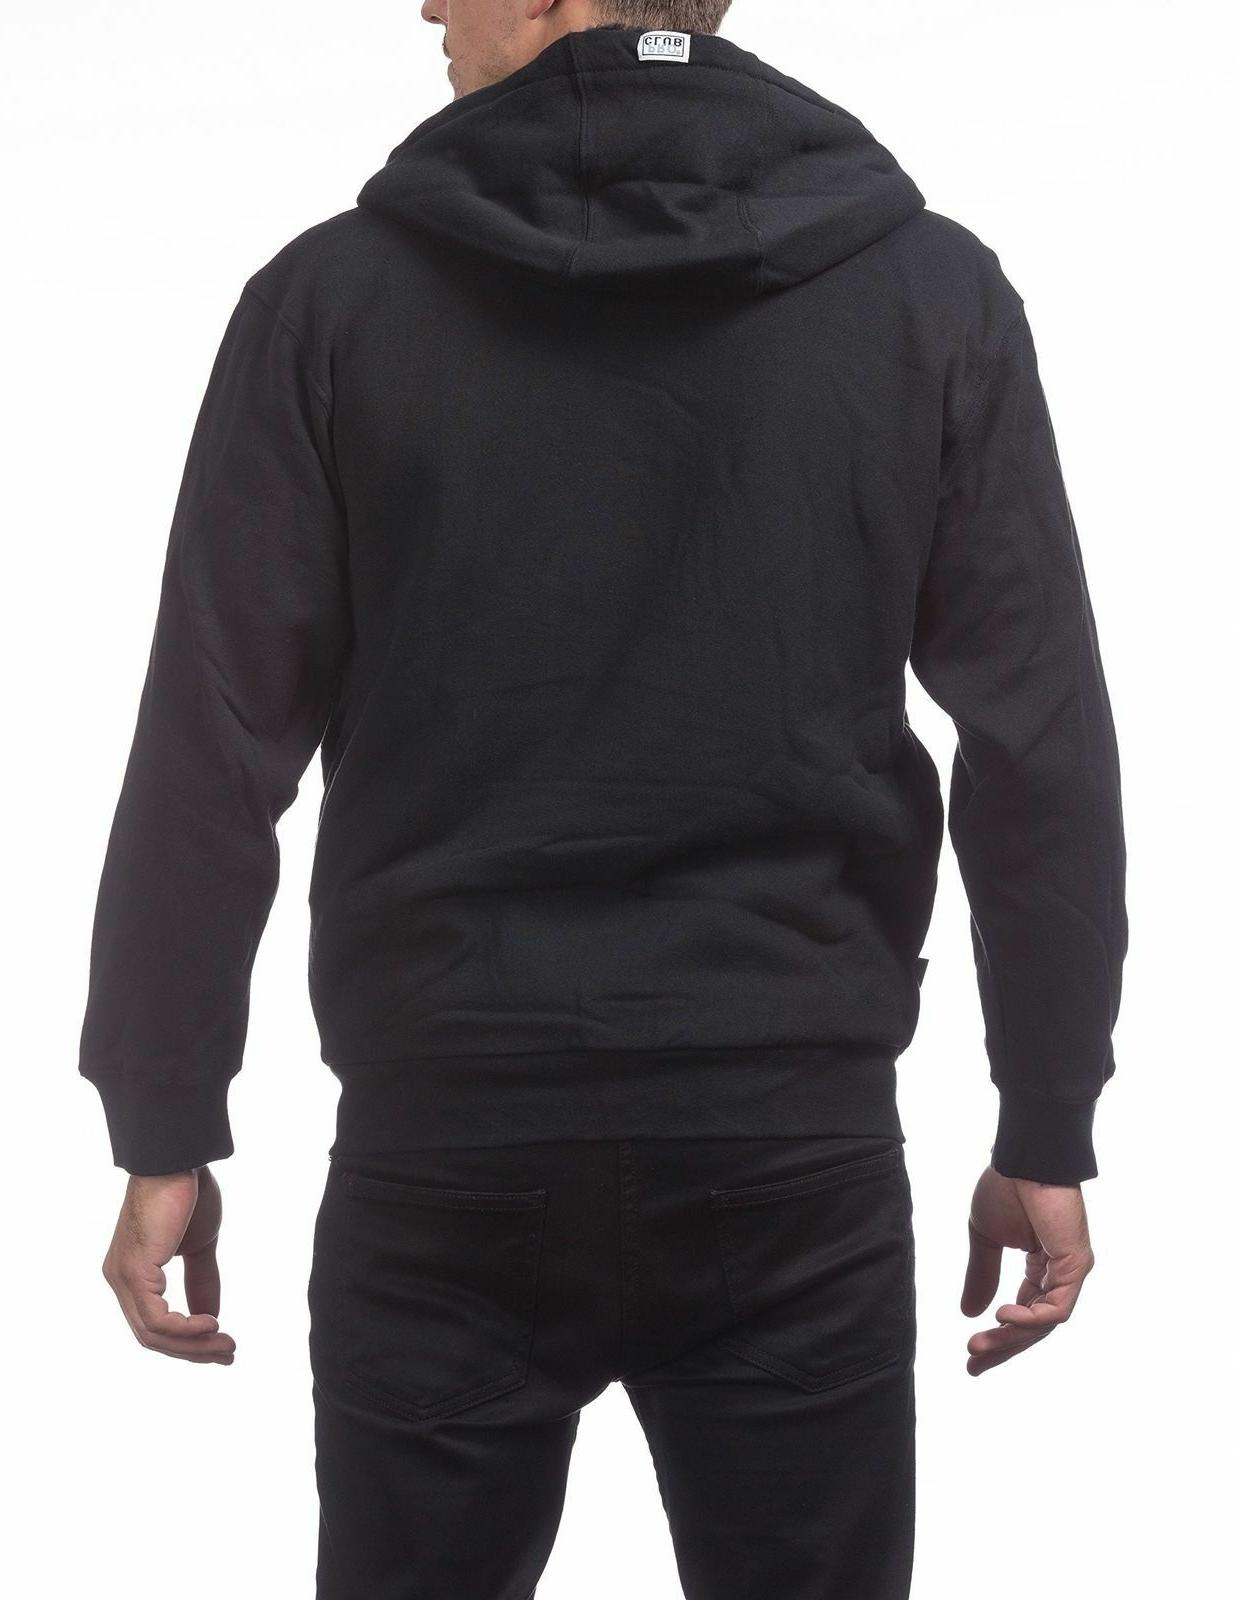 Pro Pile Zip Up Thick Jacket S-5XL